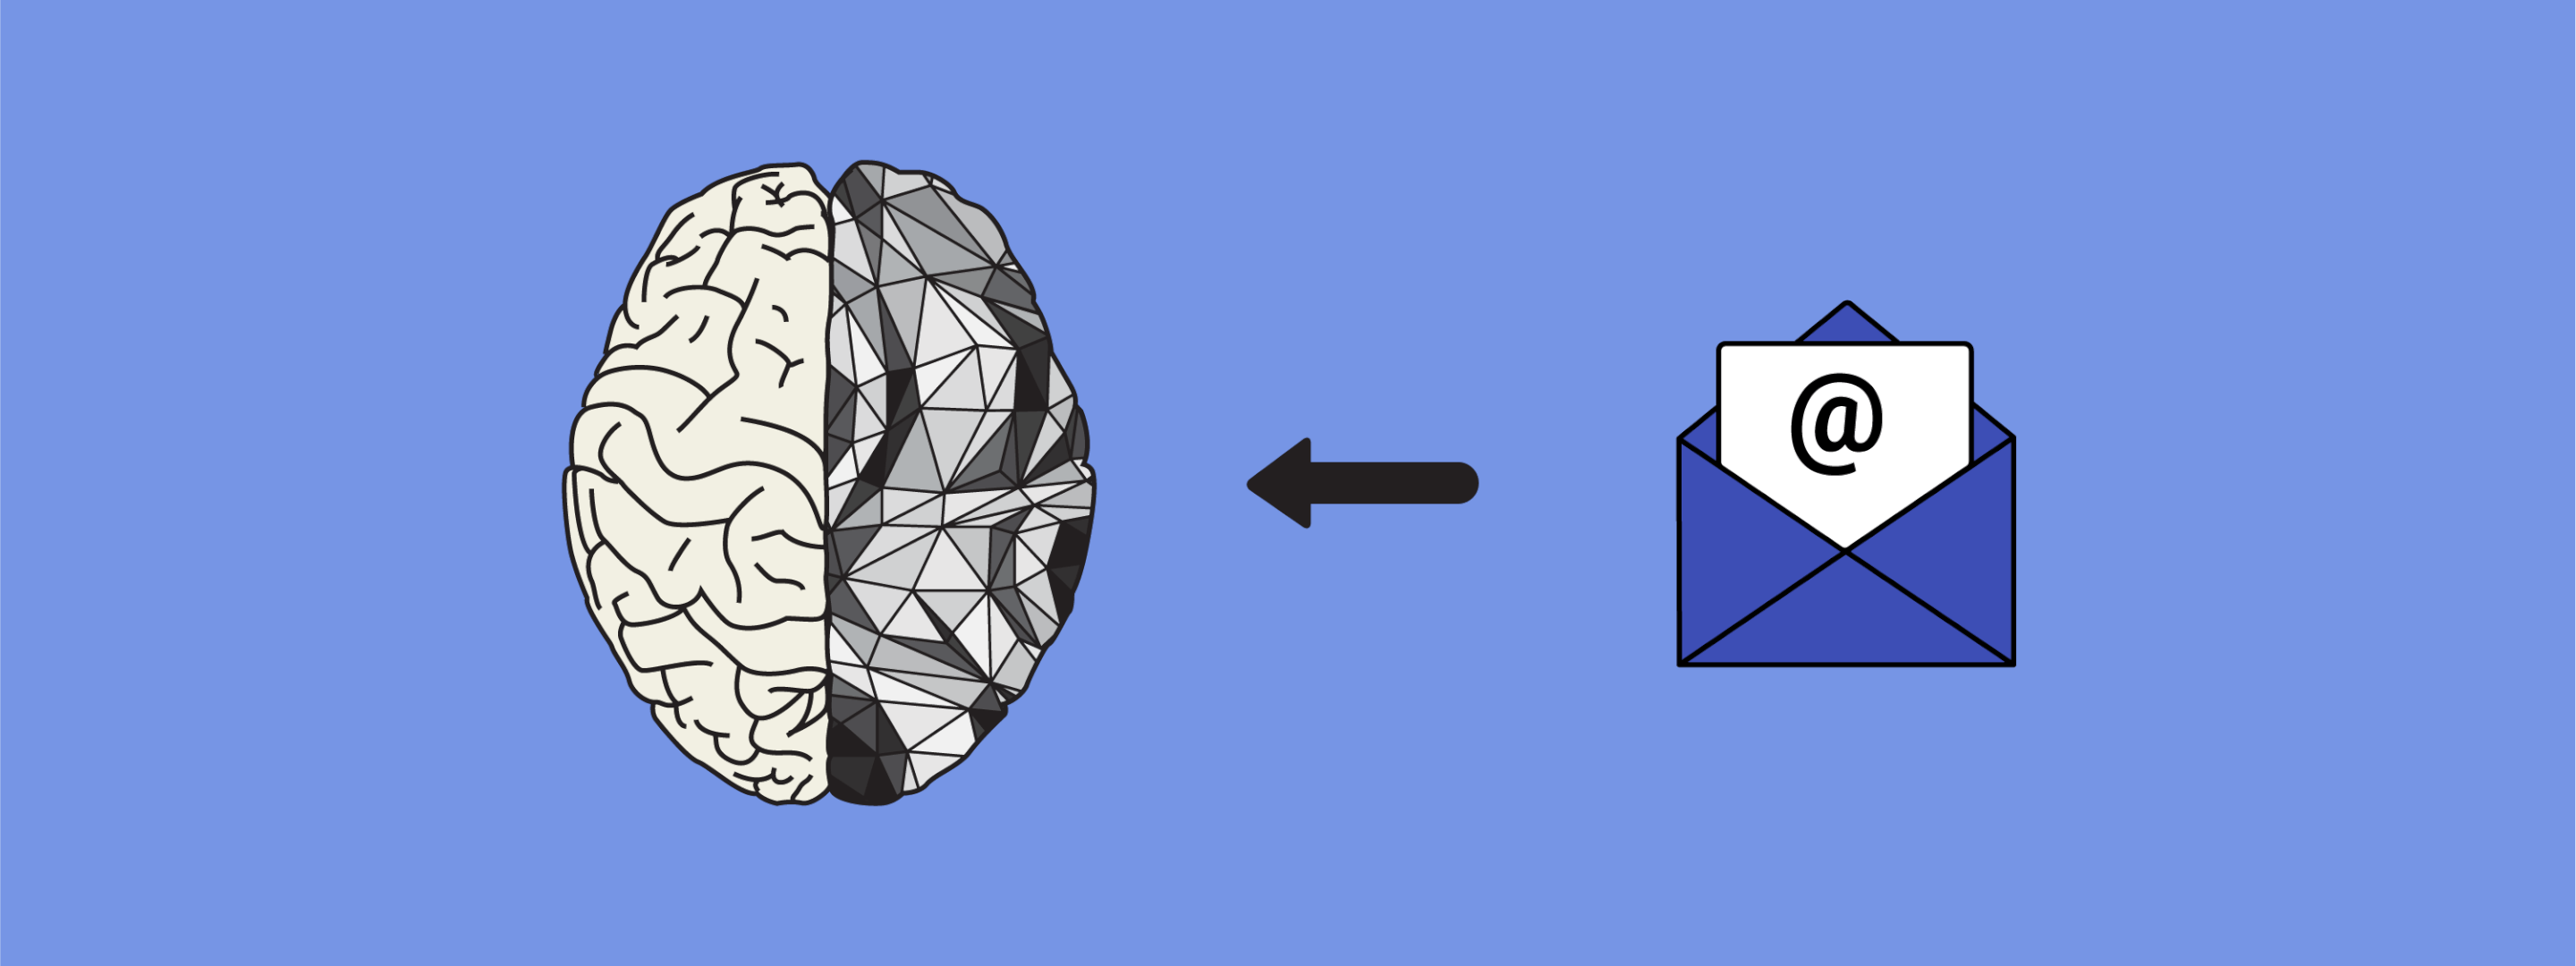 5 Email Marketing Psychology Hacks to Boost Engagement & Sales